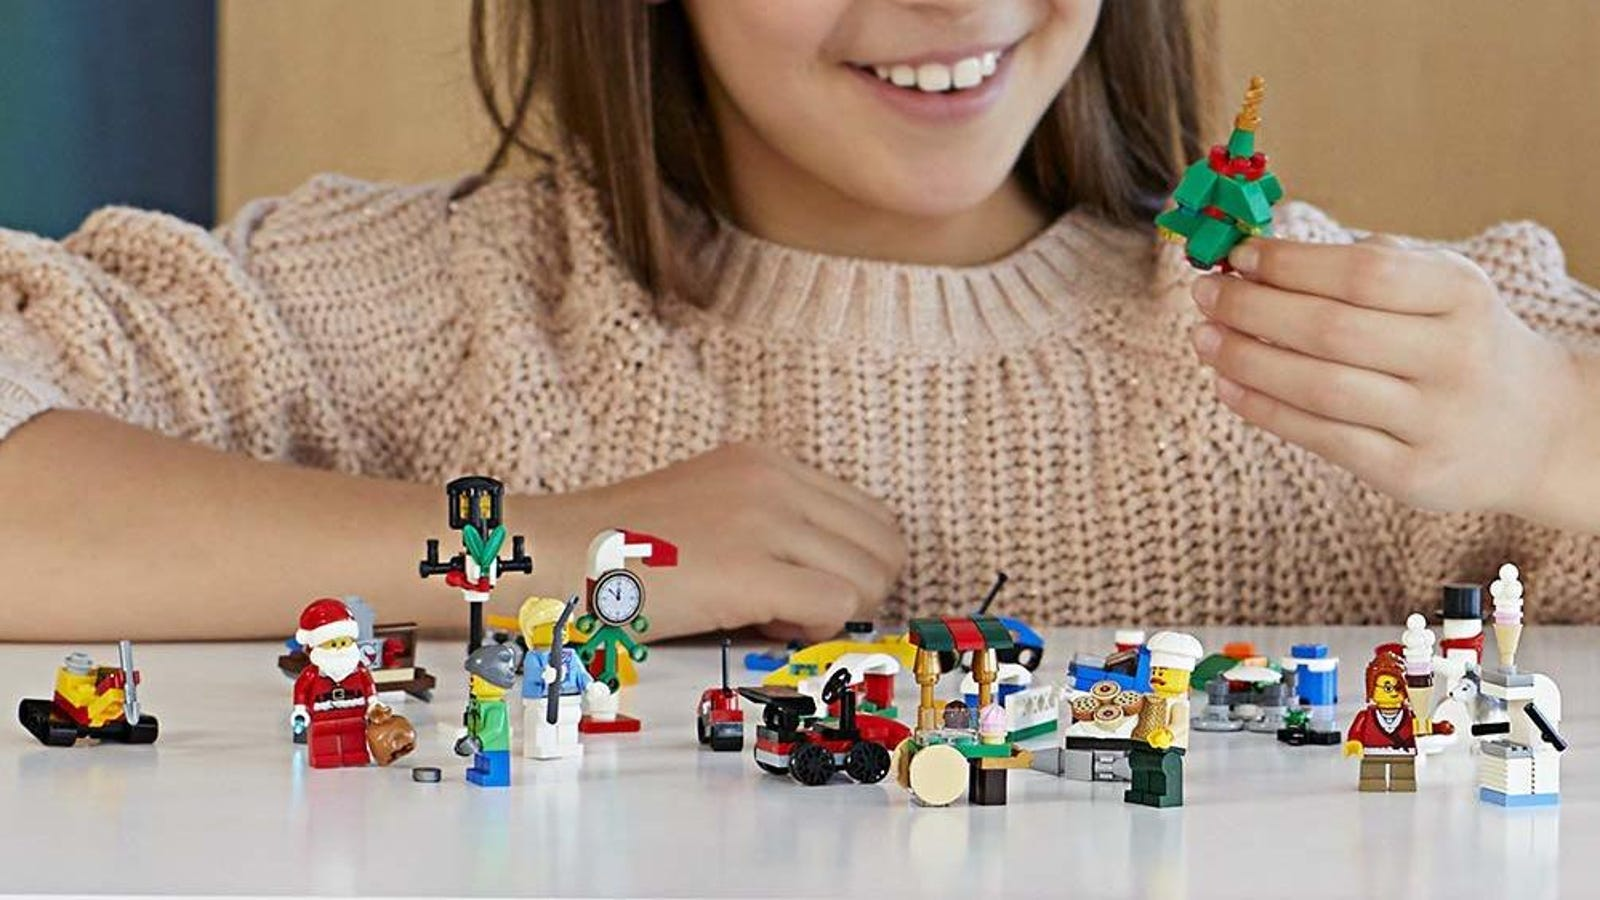 24 Miniature Gifts For $22 - Grab the LEGO City Advent Calendar On Sale